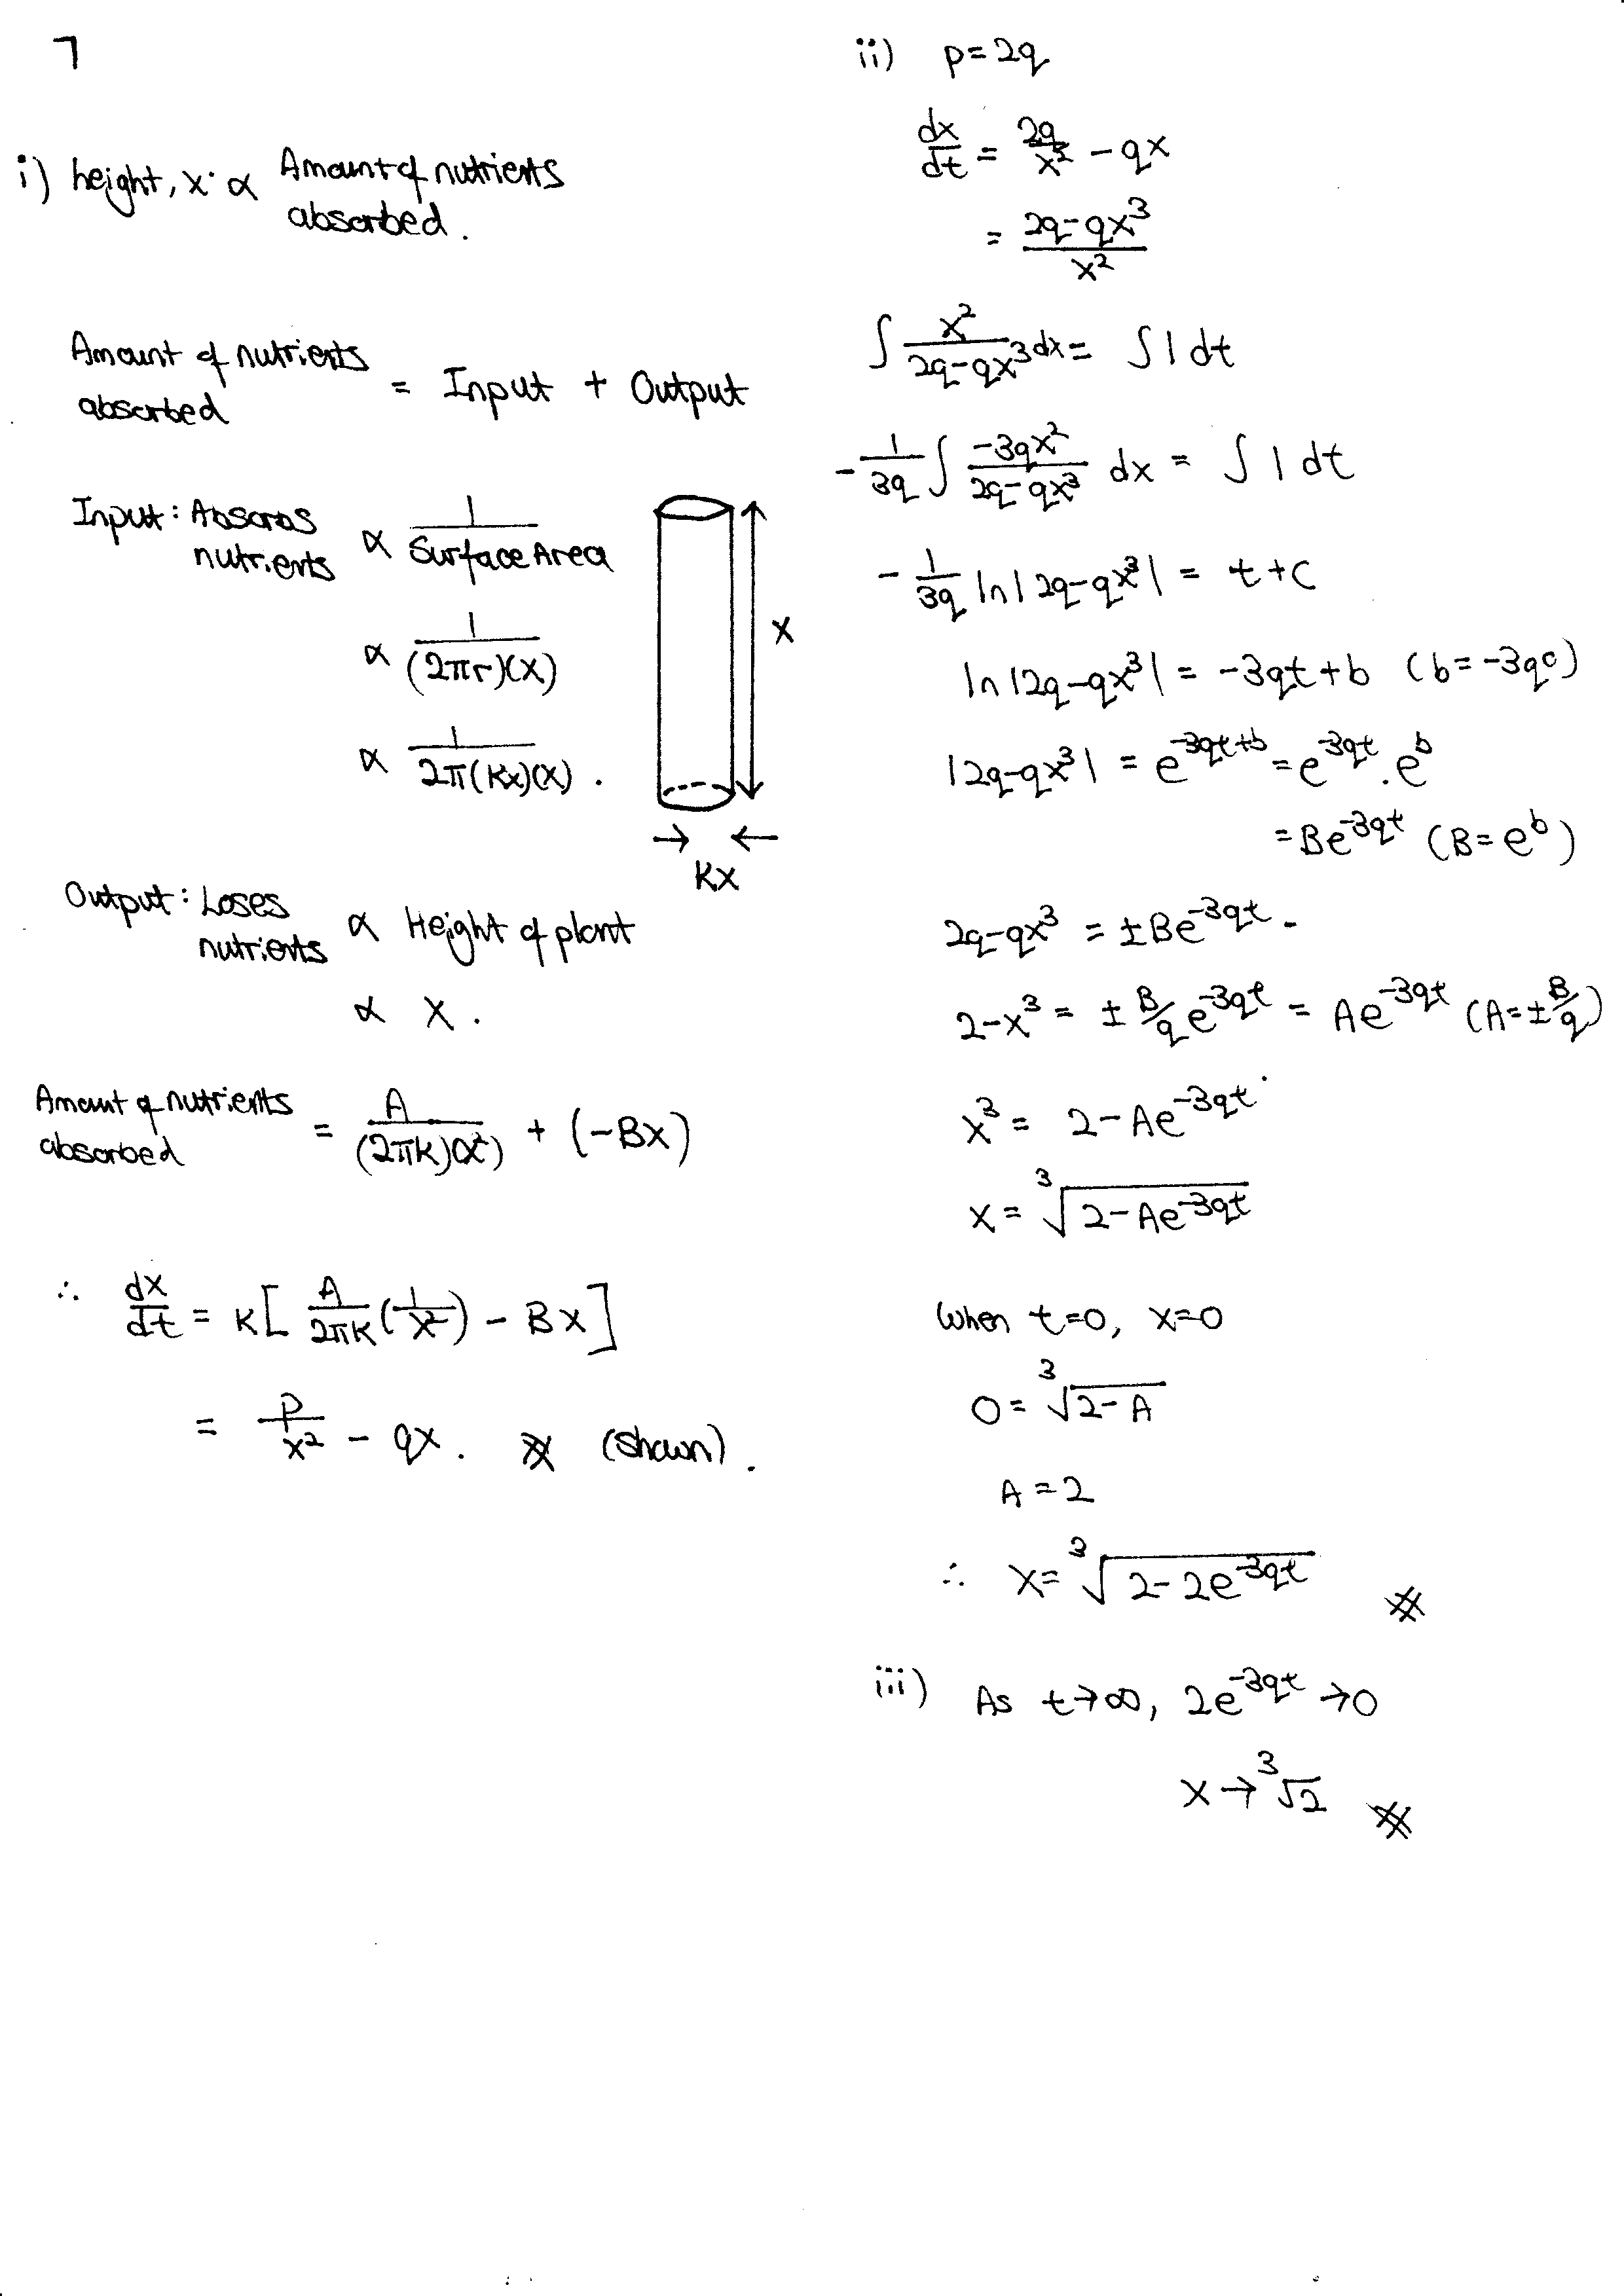 R5 Differential Equations Q8 Solutions JC Math Tuition